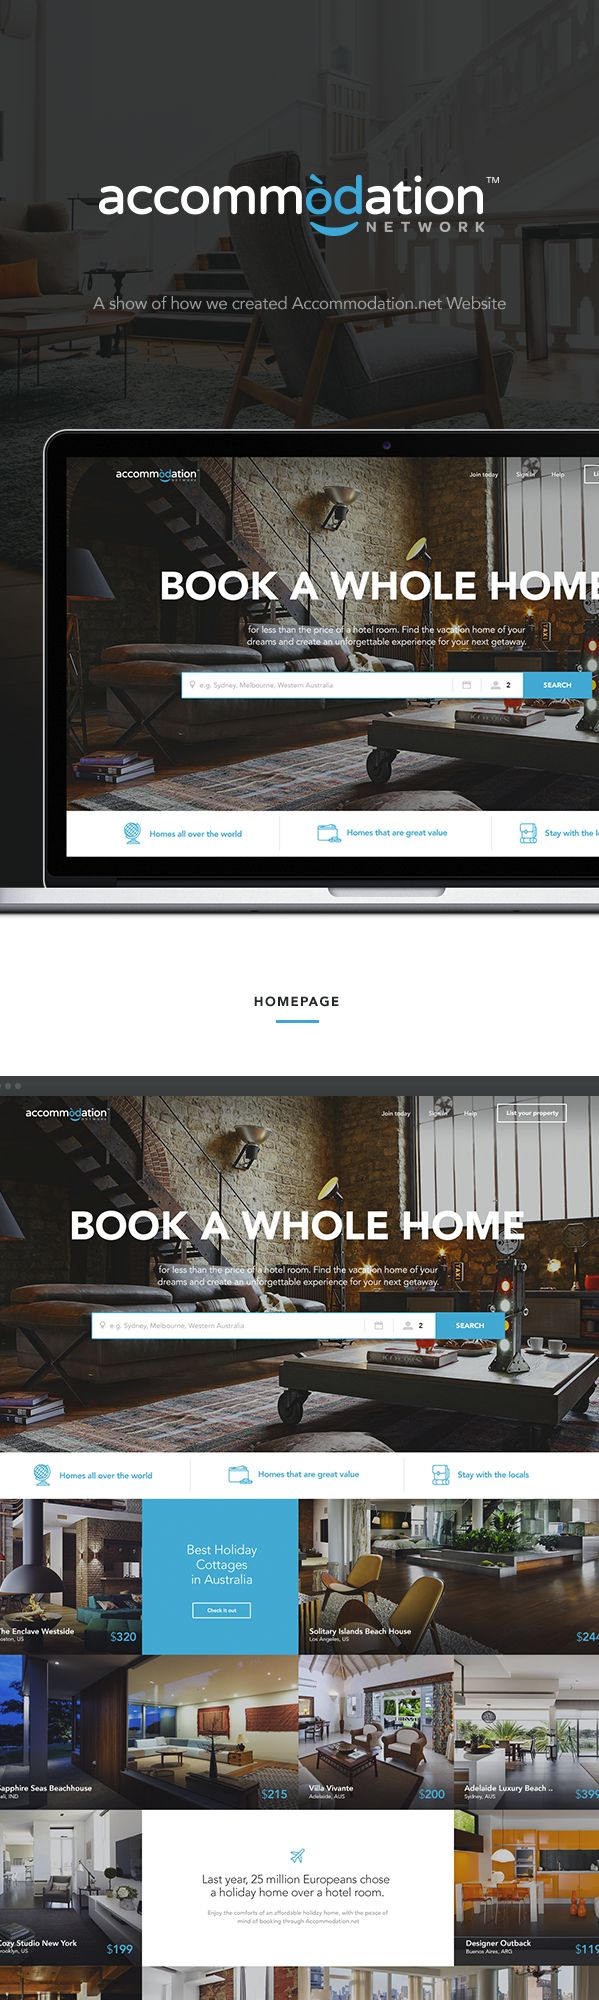 Accommodation.net Travel Booking Redesign on Behance